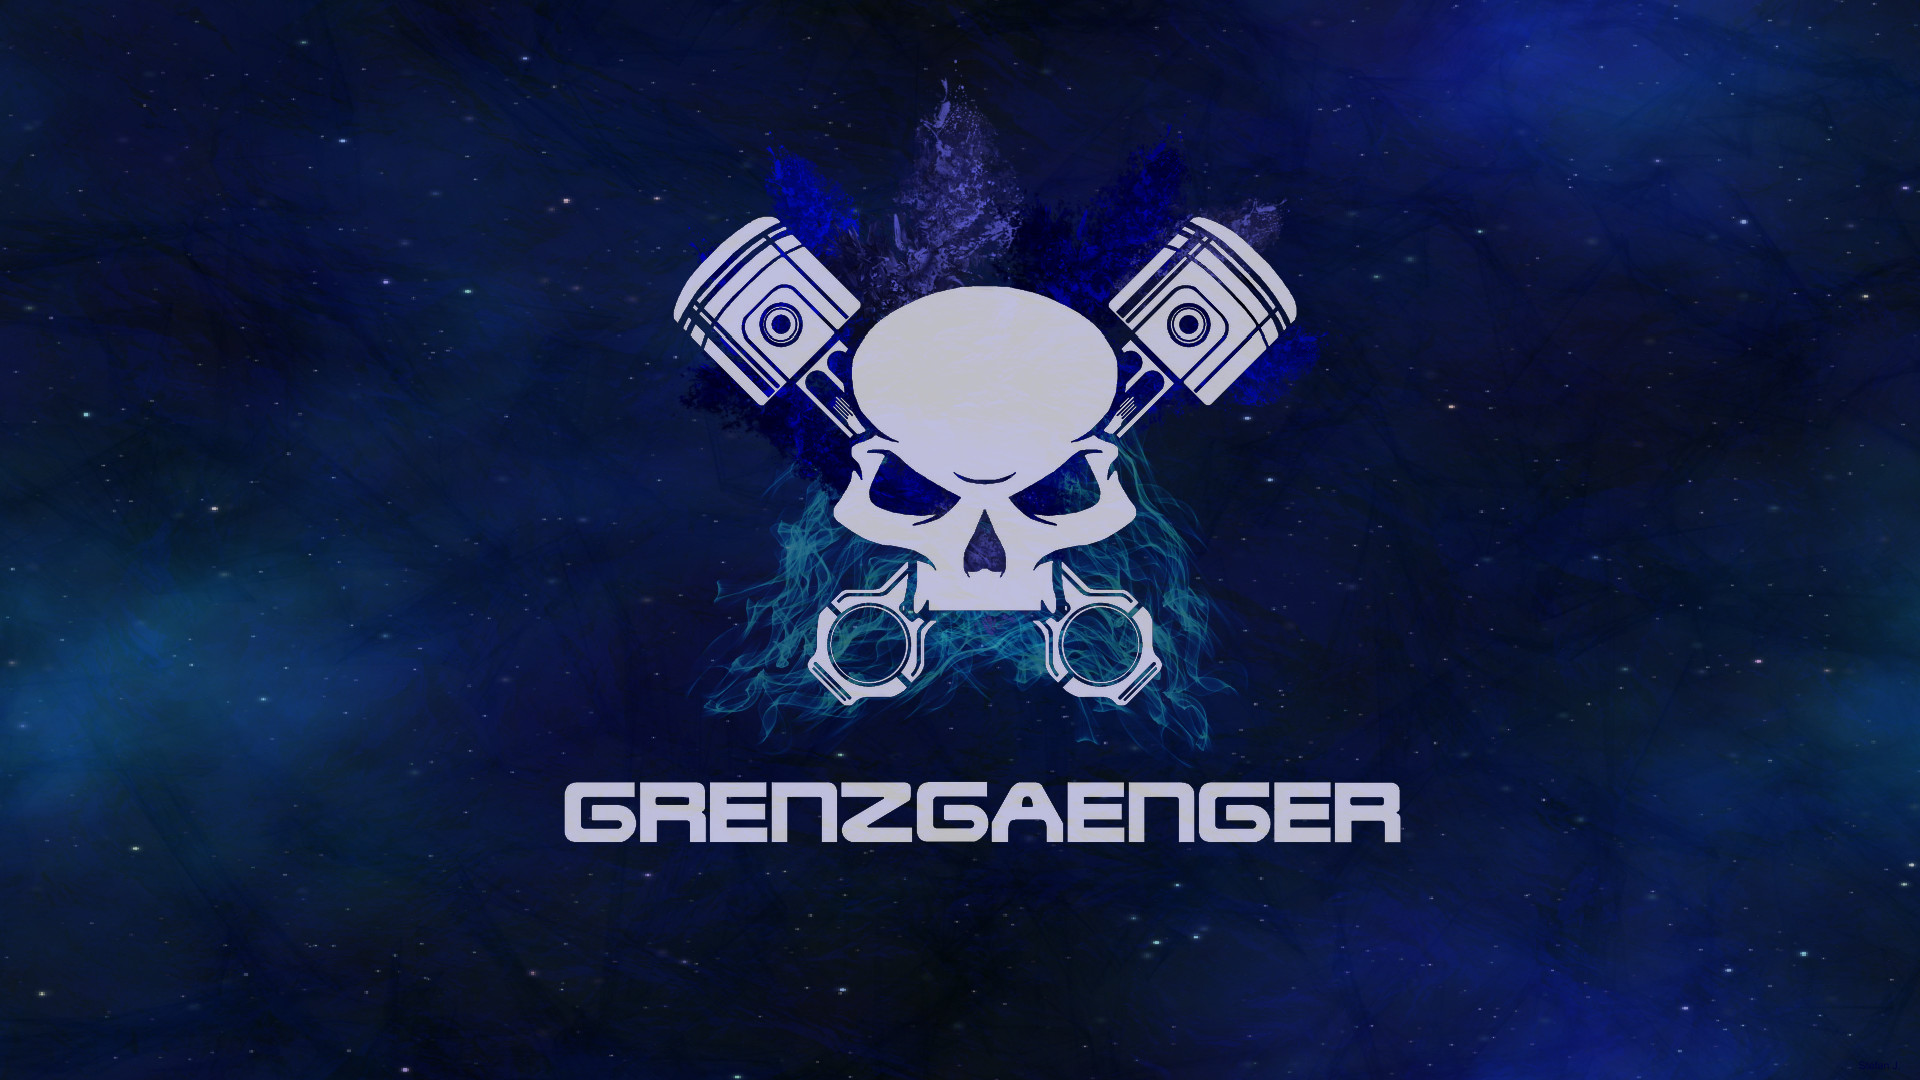 1920x1080 Produkte - Logo Motorcycle Club Grenzgaenger Blau Wallpaper